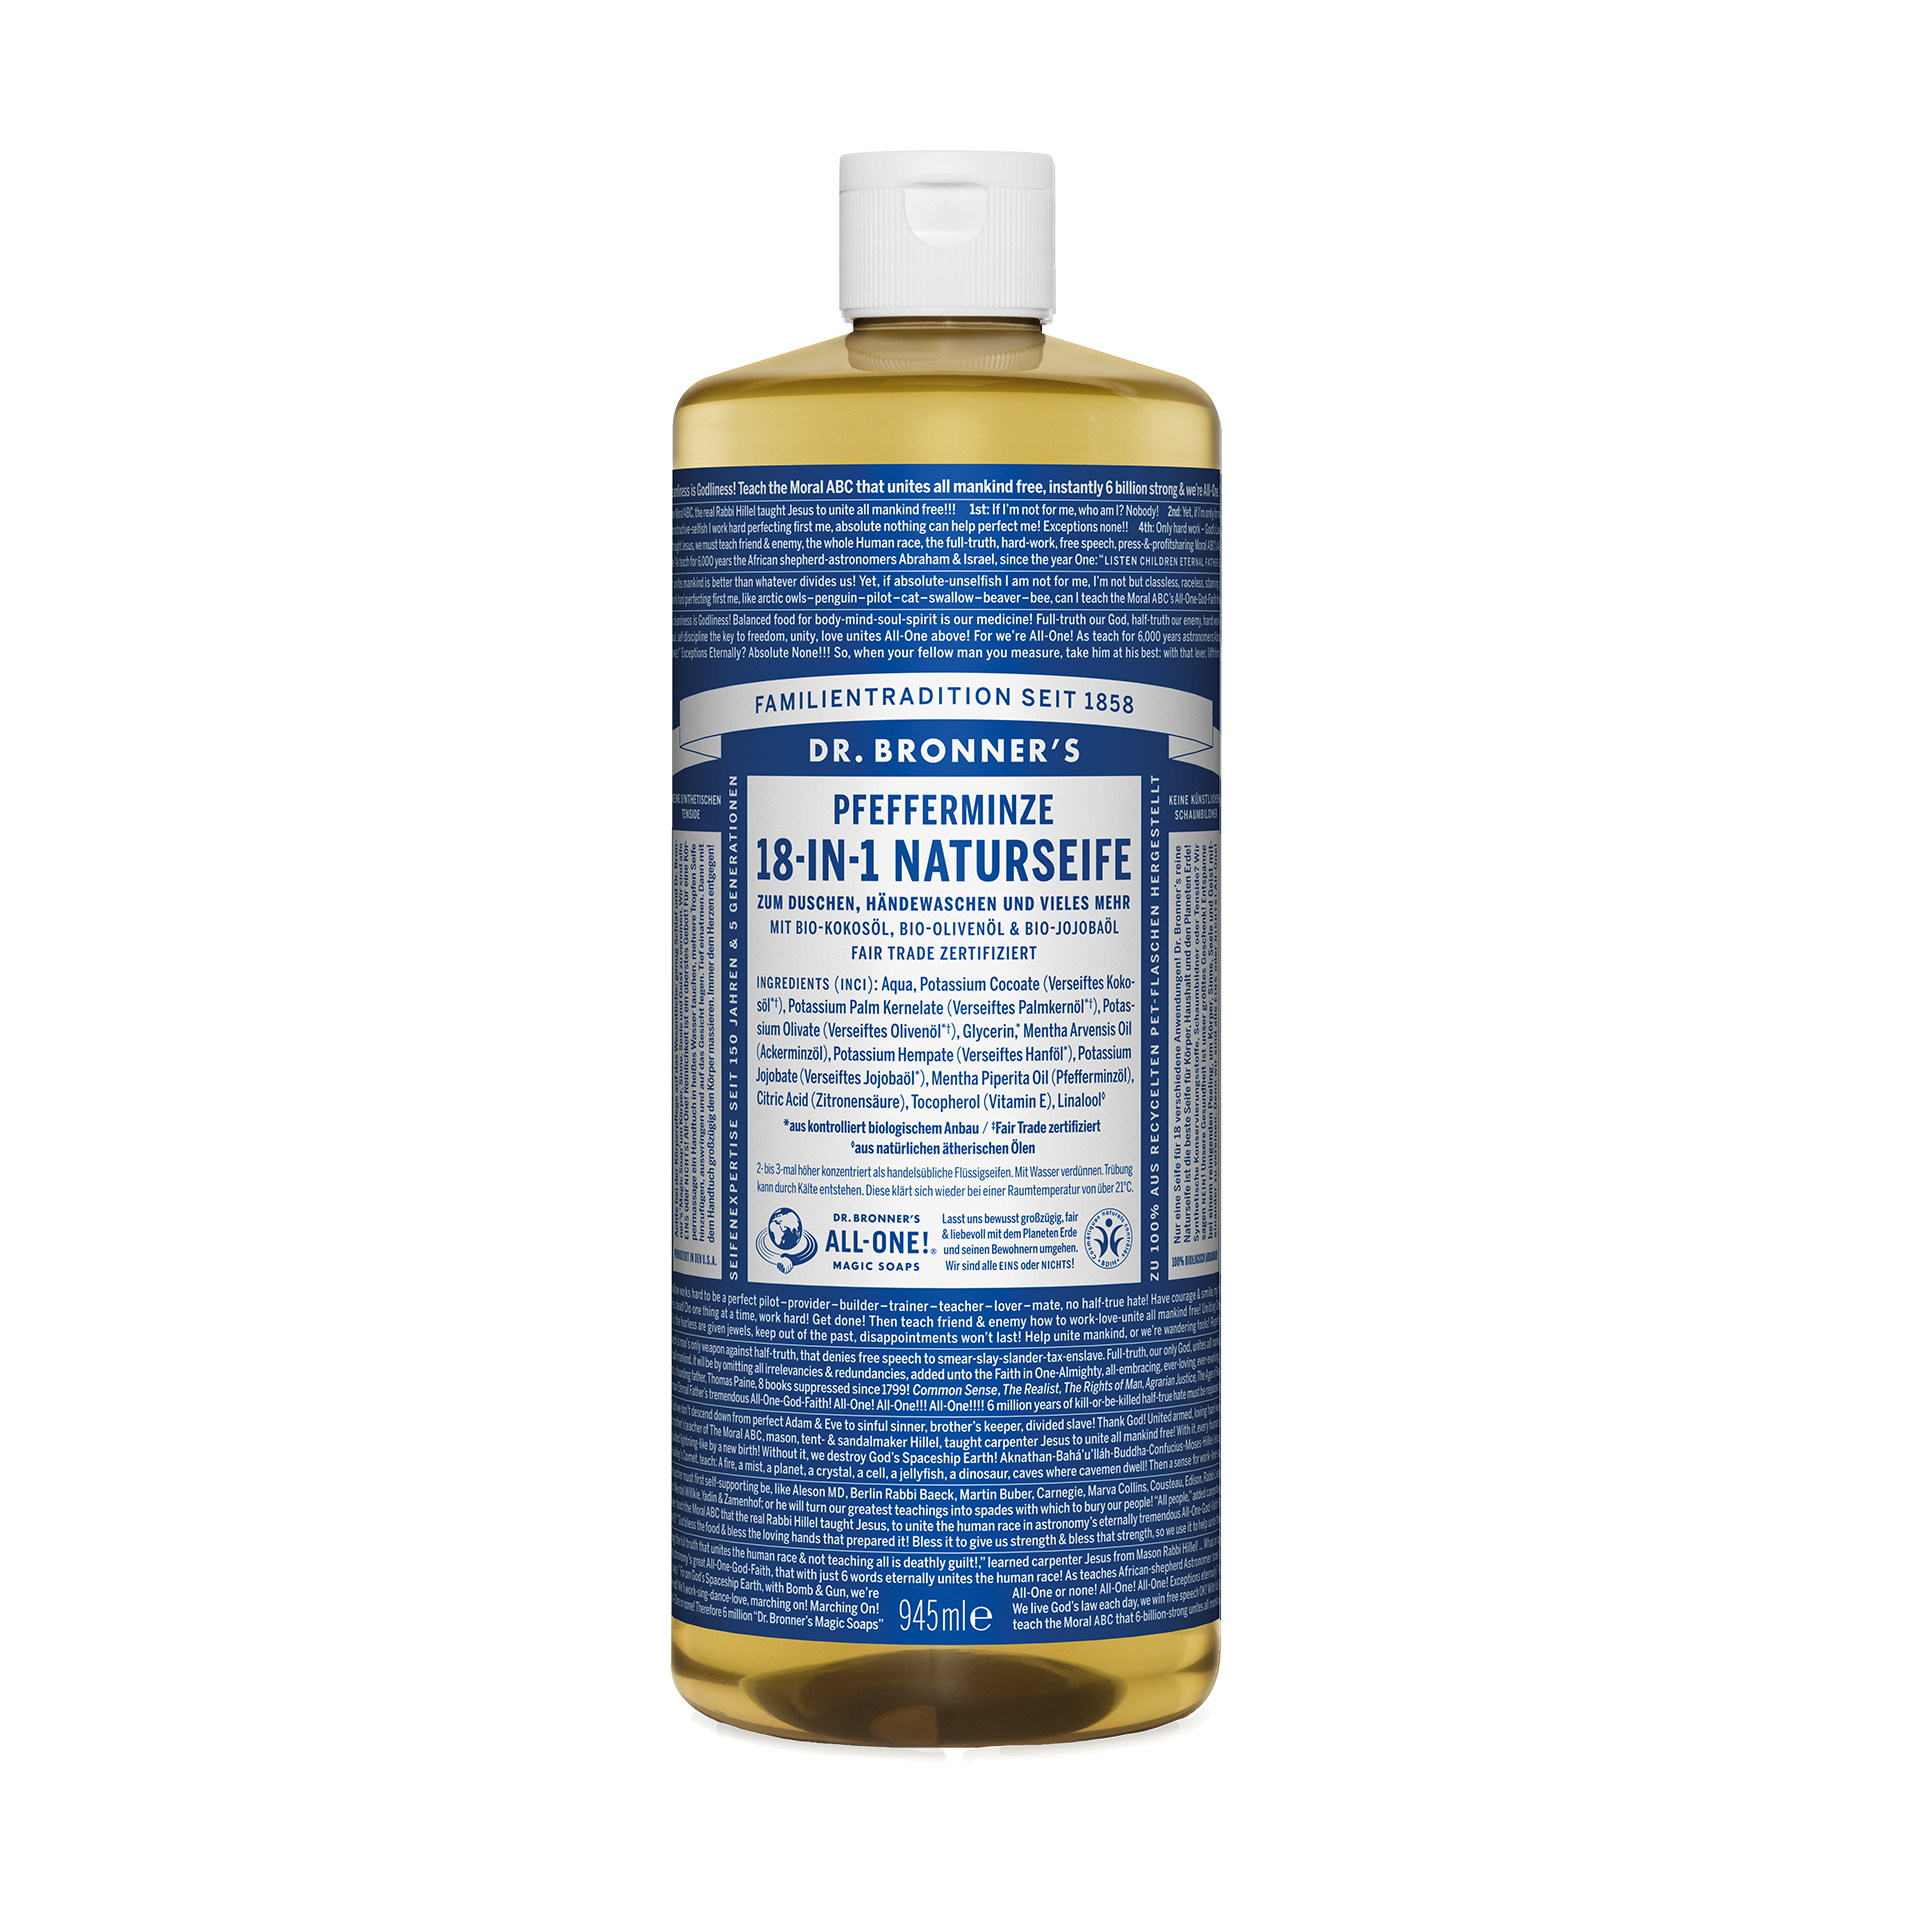 Dr. Bronner's 18-in-1 Naturseife, Pfefferminze, 945 ml